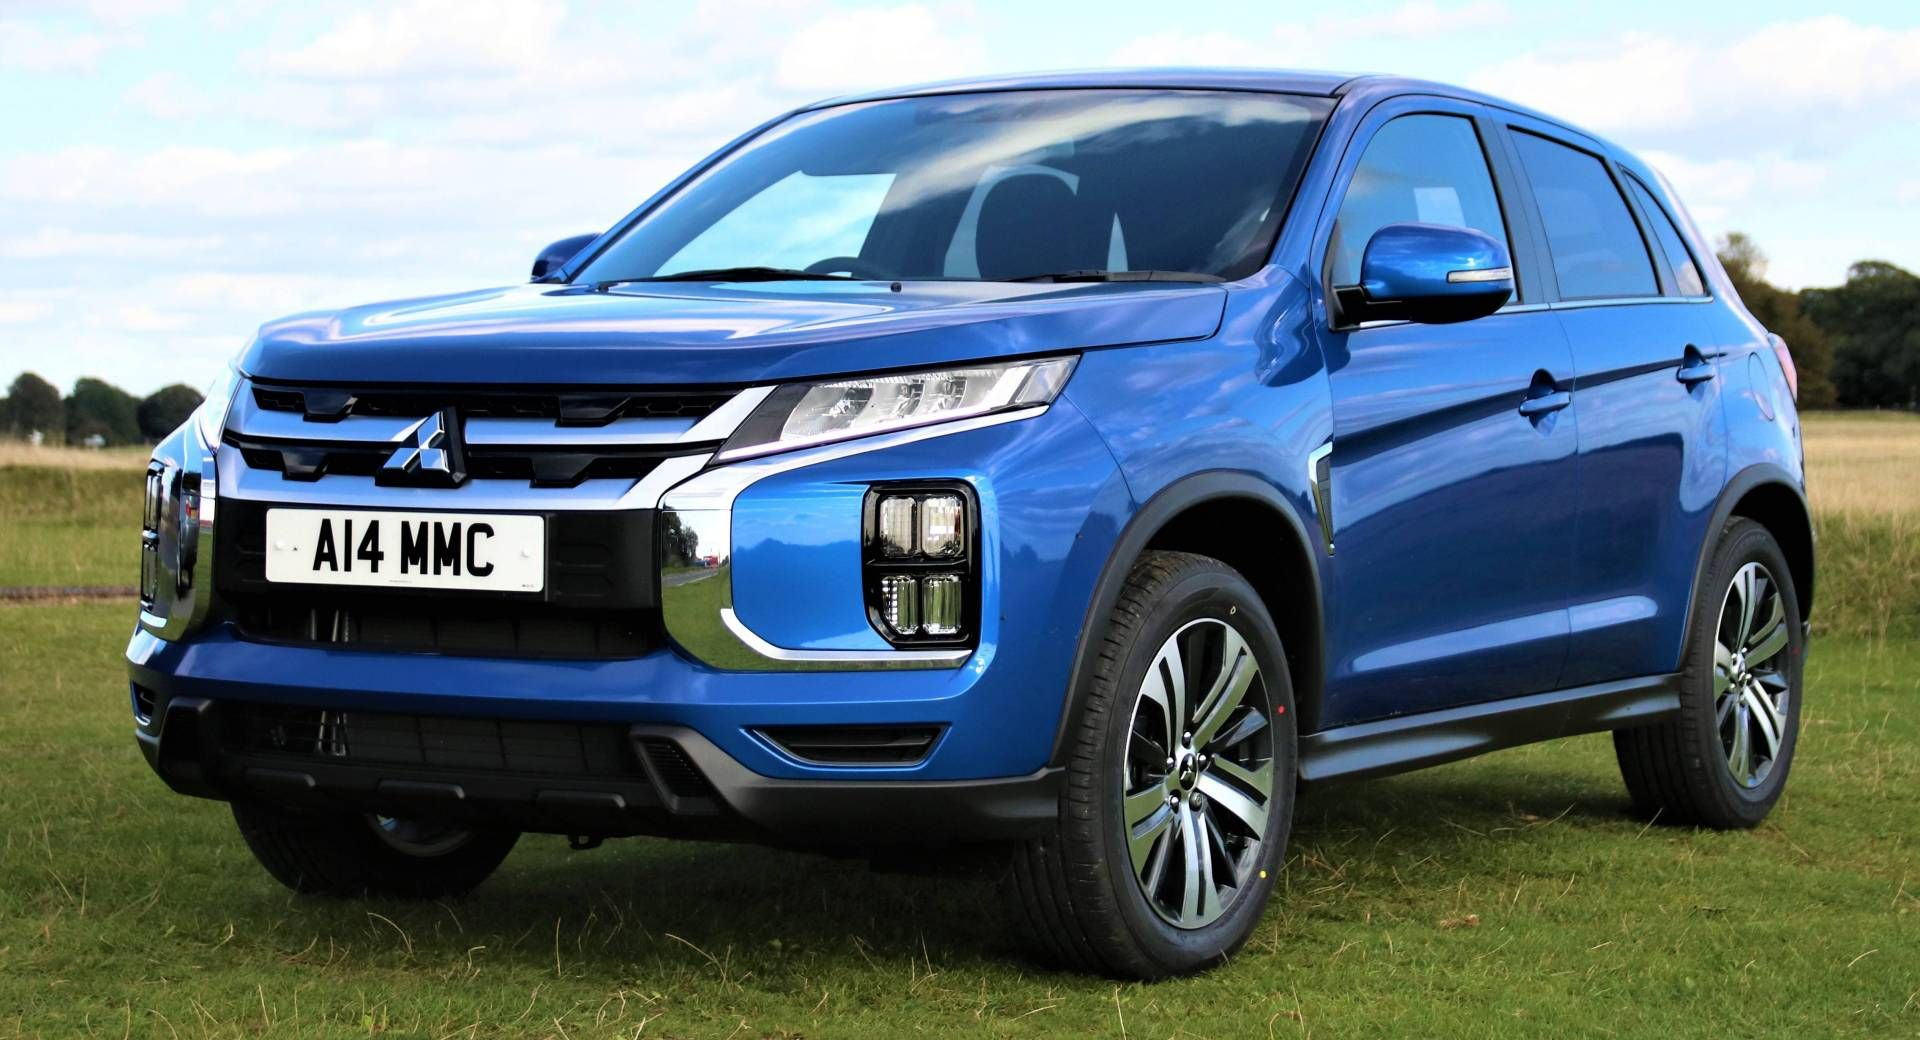 2020 Mitsubishi Asx Goes On Sale In Britain From 20 295